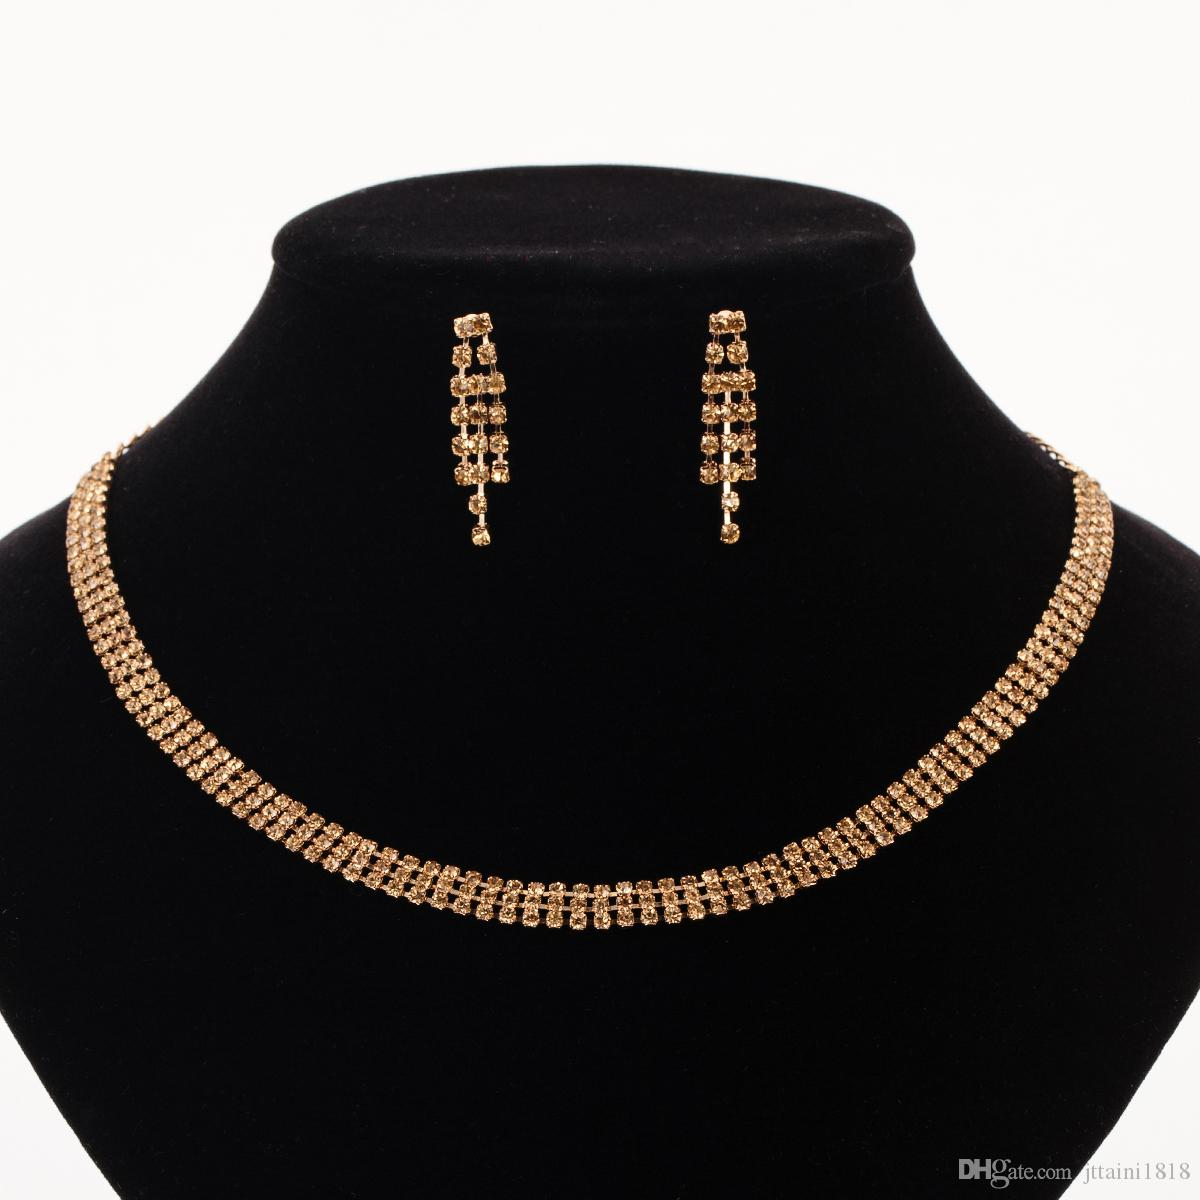 YFJEWE Luxury Wedding Jewelry Sets For Bride Elegant Crystal Chain Necklace Earrings Set for Women Gold-color Party Jewelry